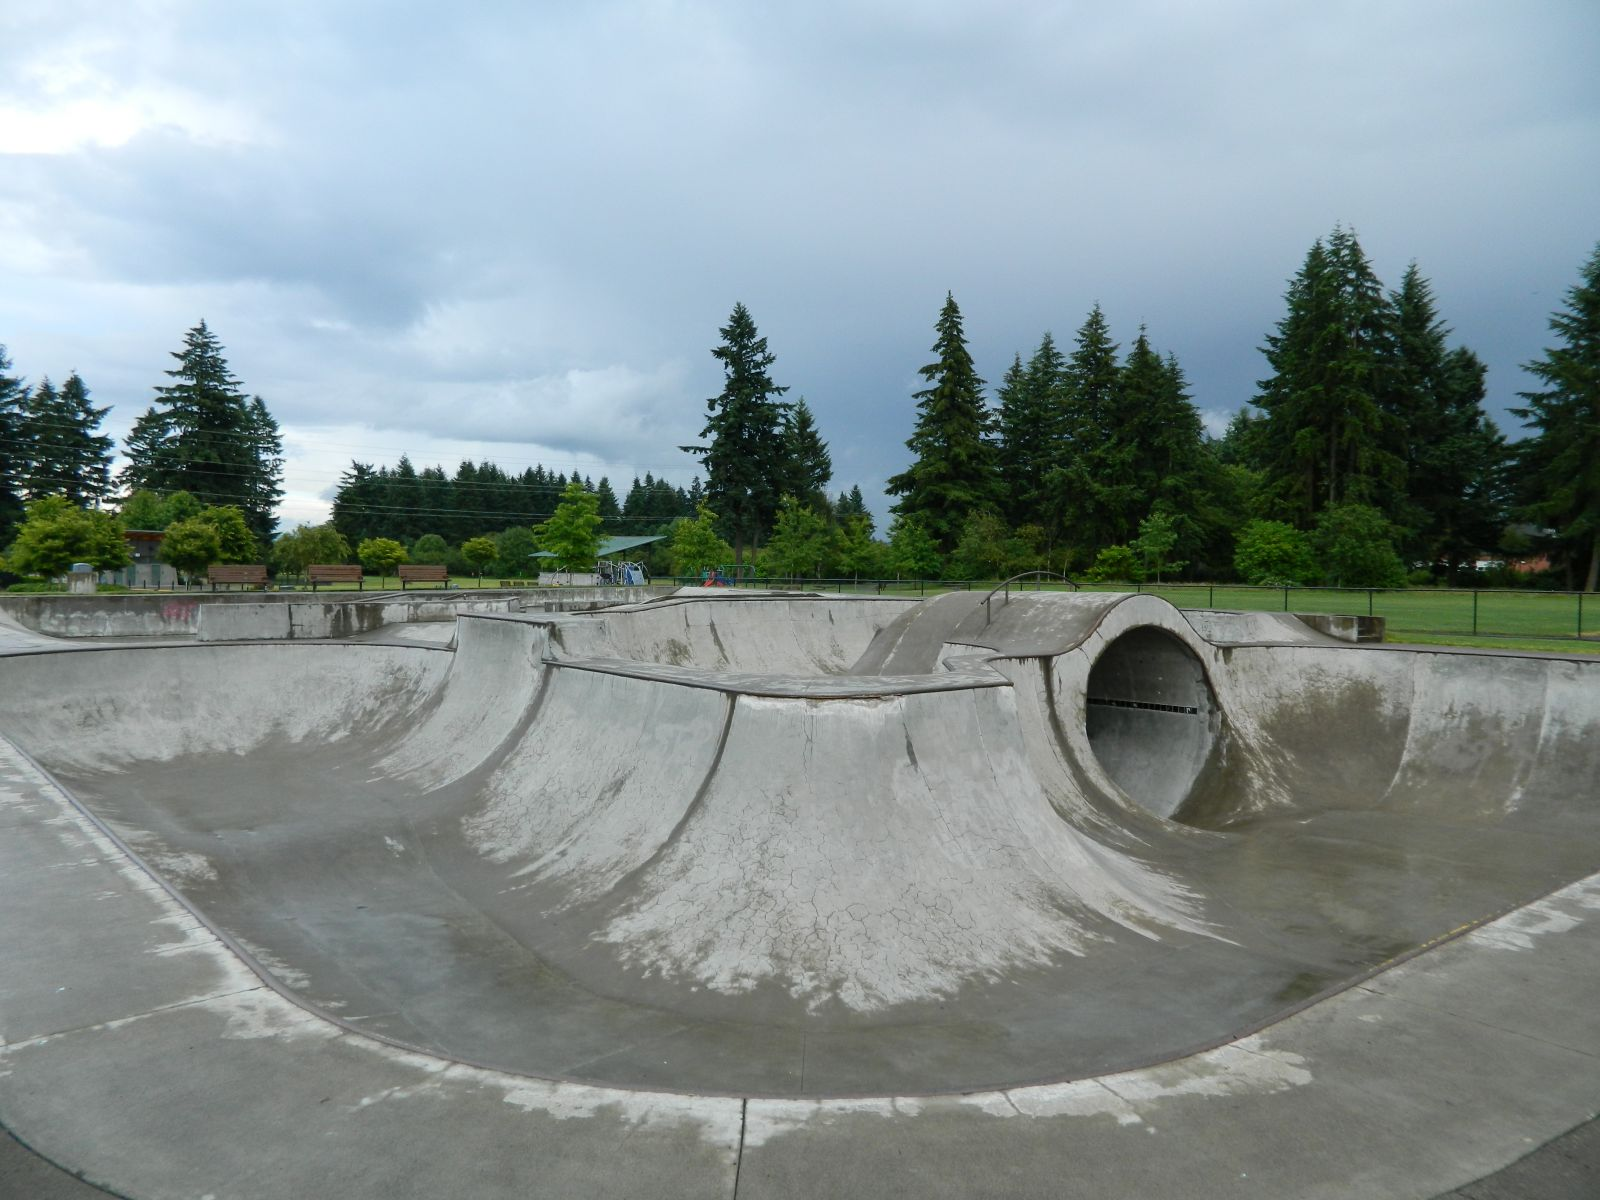 Pacific Community Park's Extreme Sports Area